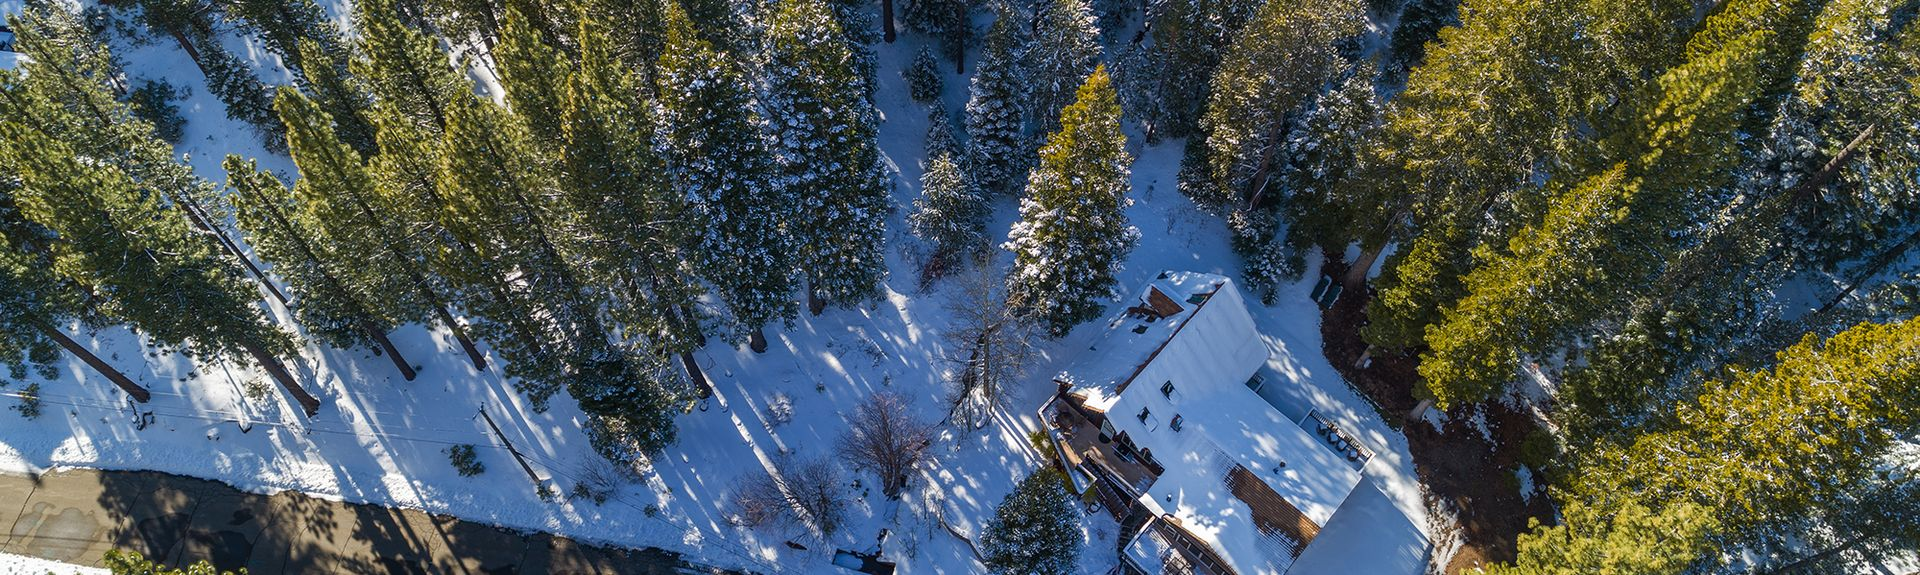 Homewood Mountain Resort, Homewood, California, United States